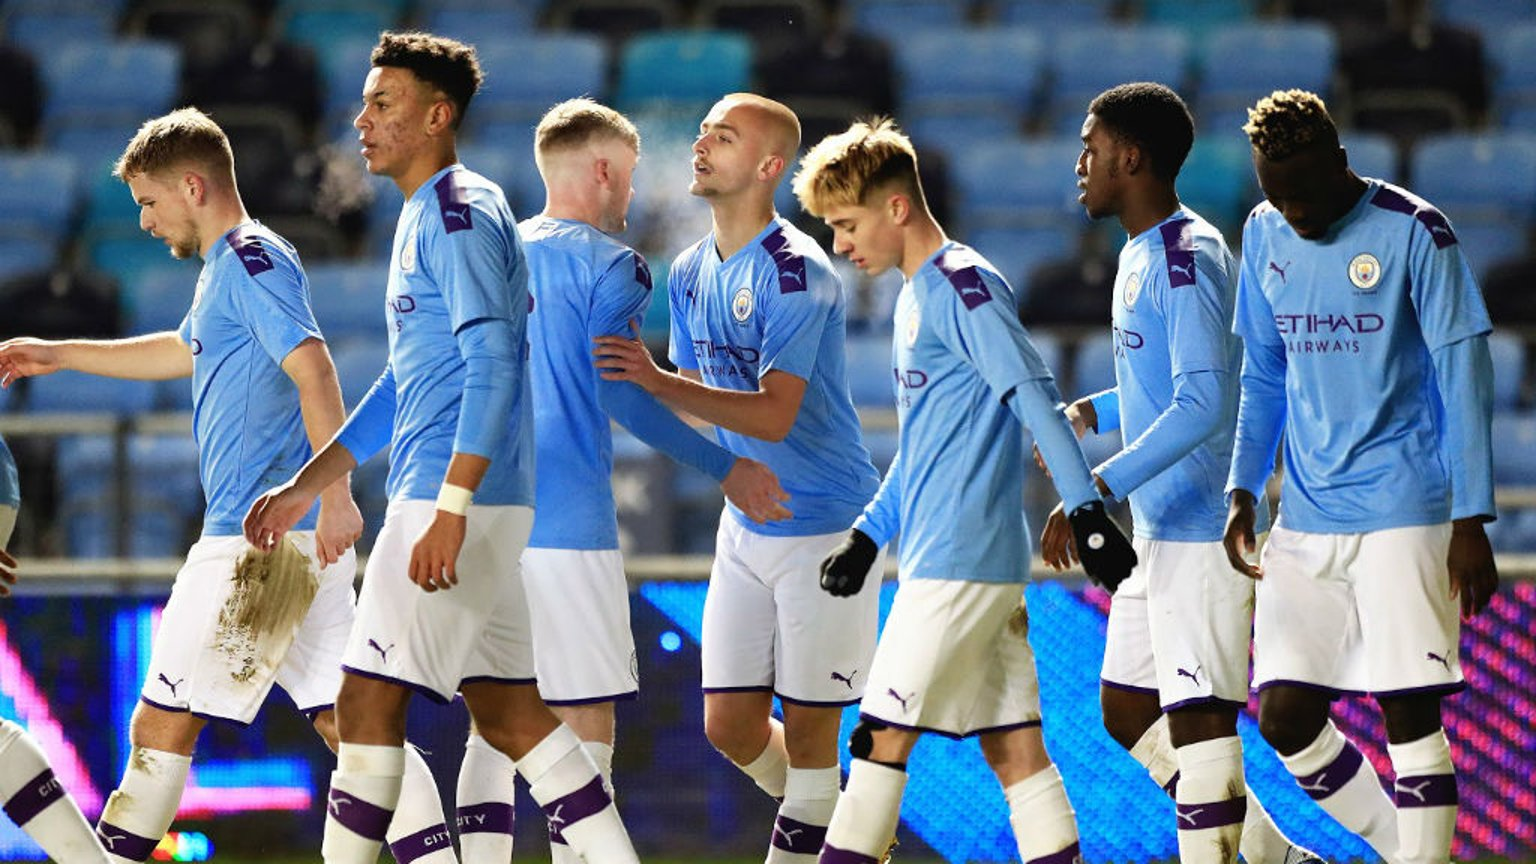 EARLY STRIKE: The City players celebrate after Lewis Fiorini's goal